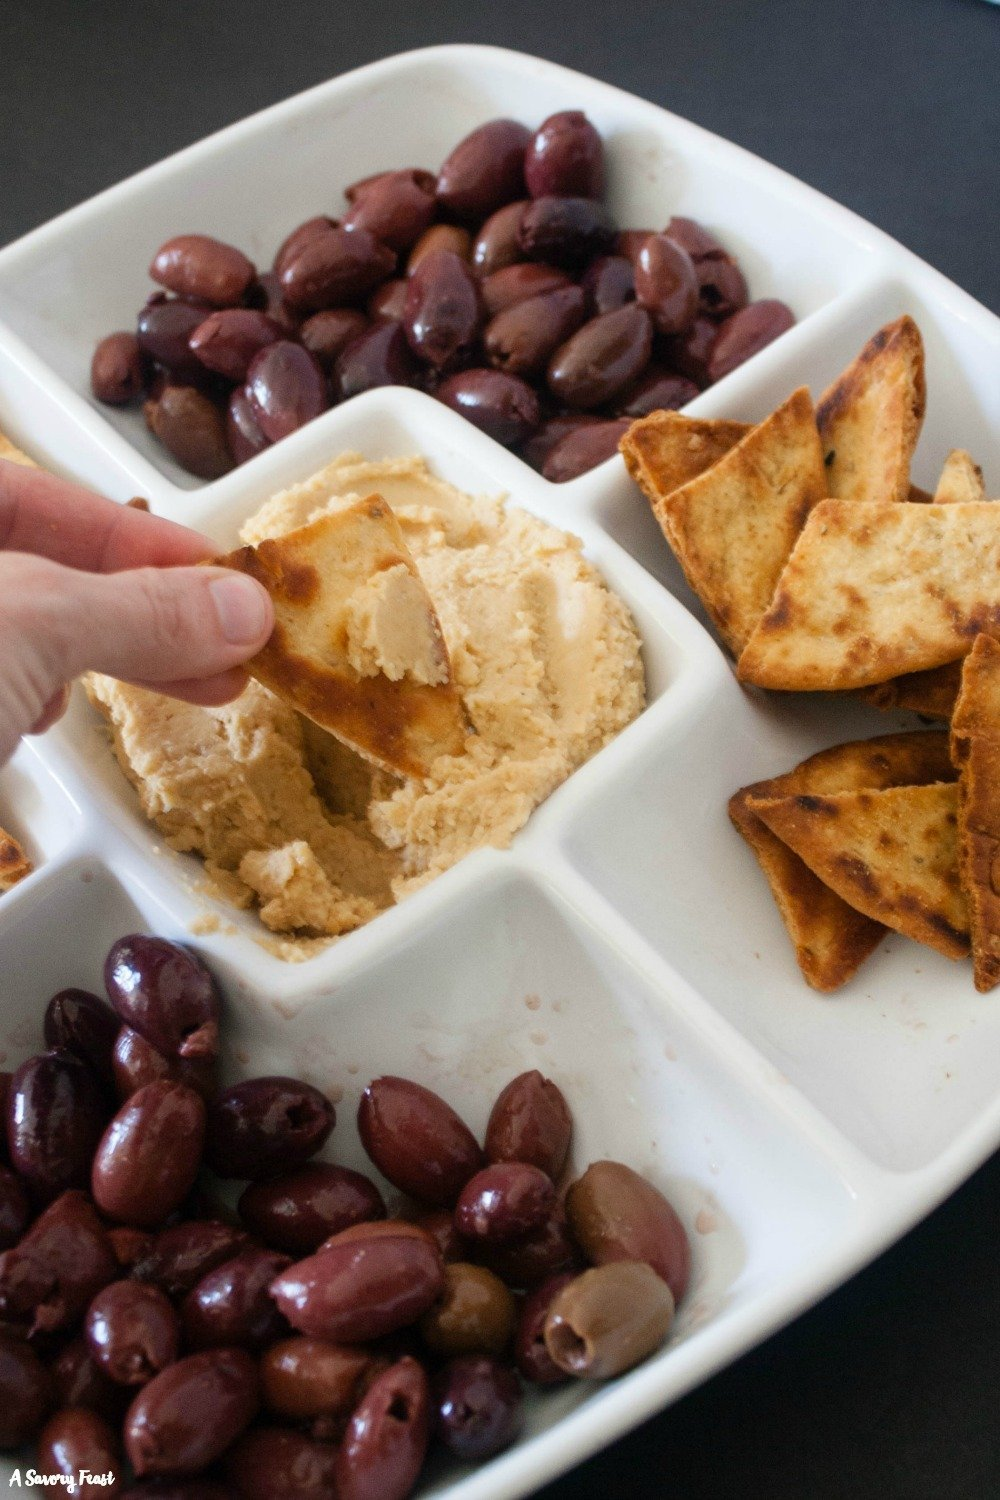 Need a simple, semi-homemade appetizer idea for Easter? Your guests will love this Hummus and Olives Appetizer Tray!